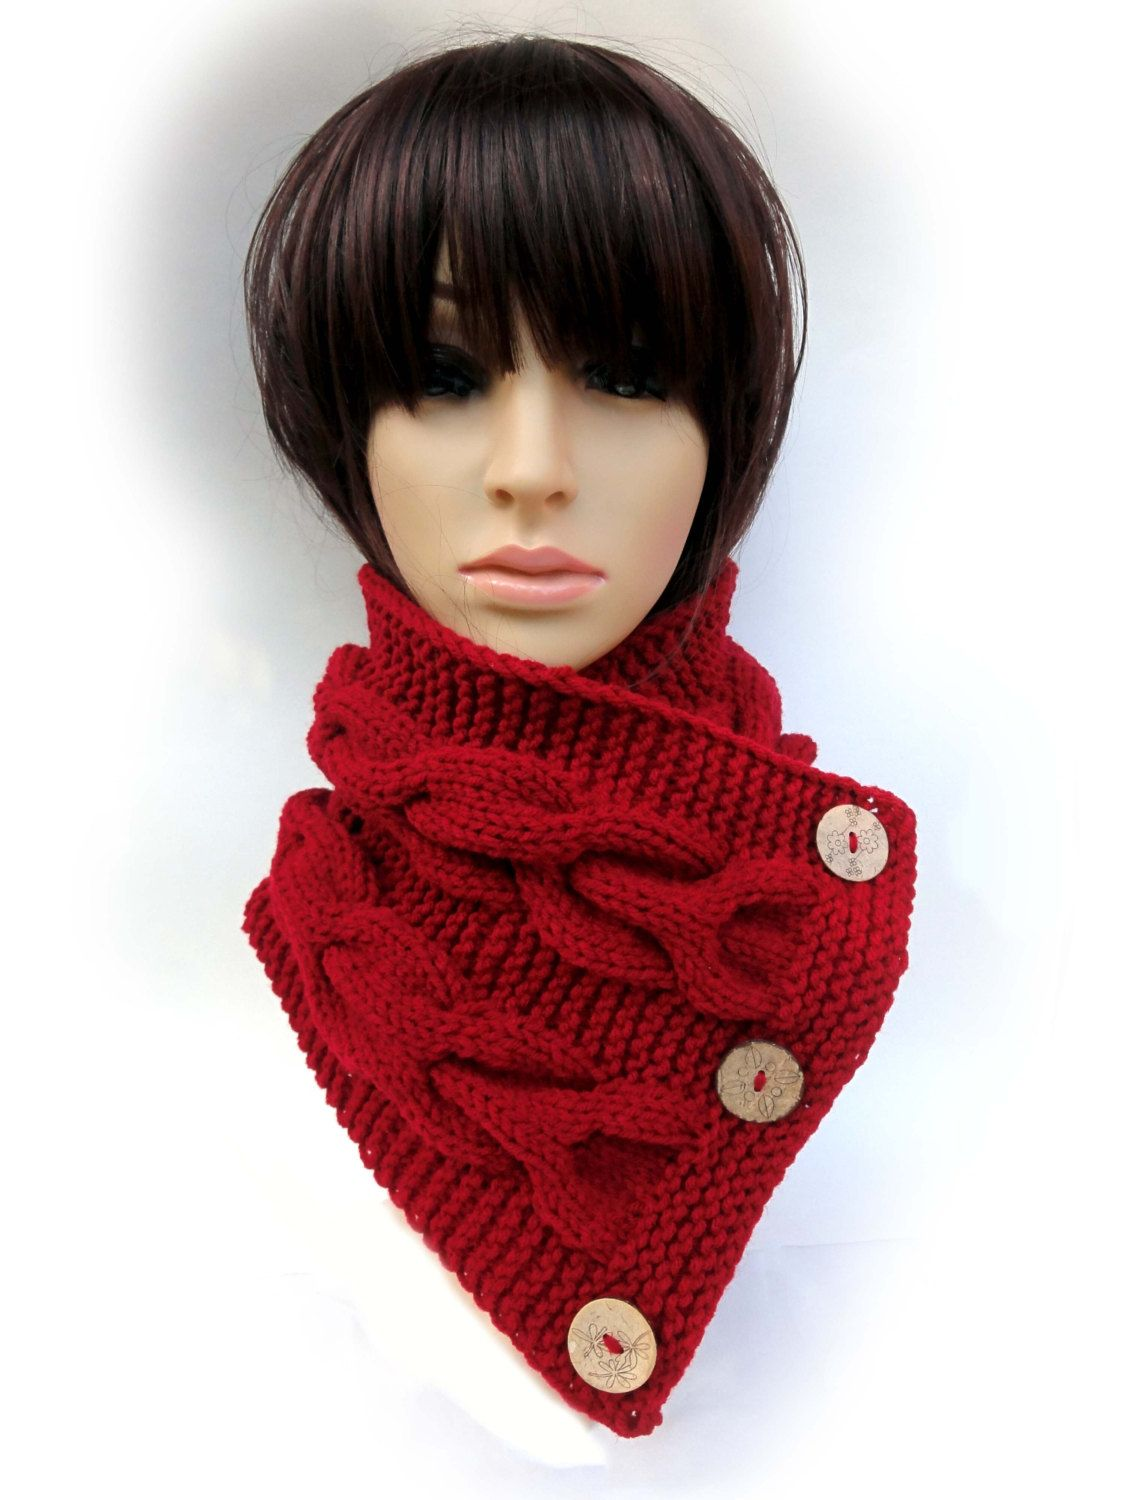 Hand Knitted Cable Cowl with Buttons. Burgundy (Dark Red) or 43 colors. Warm Chunky Women's Scarf. Neck Warmer. Autumn Fall Winter Accessory by VividBear on Etsy